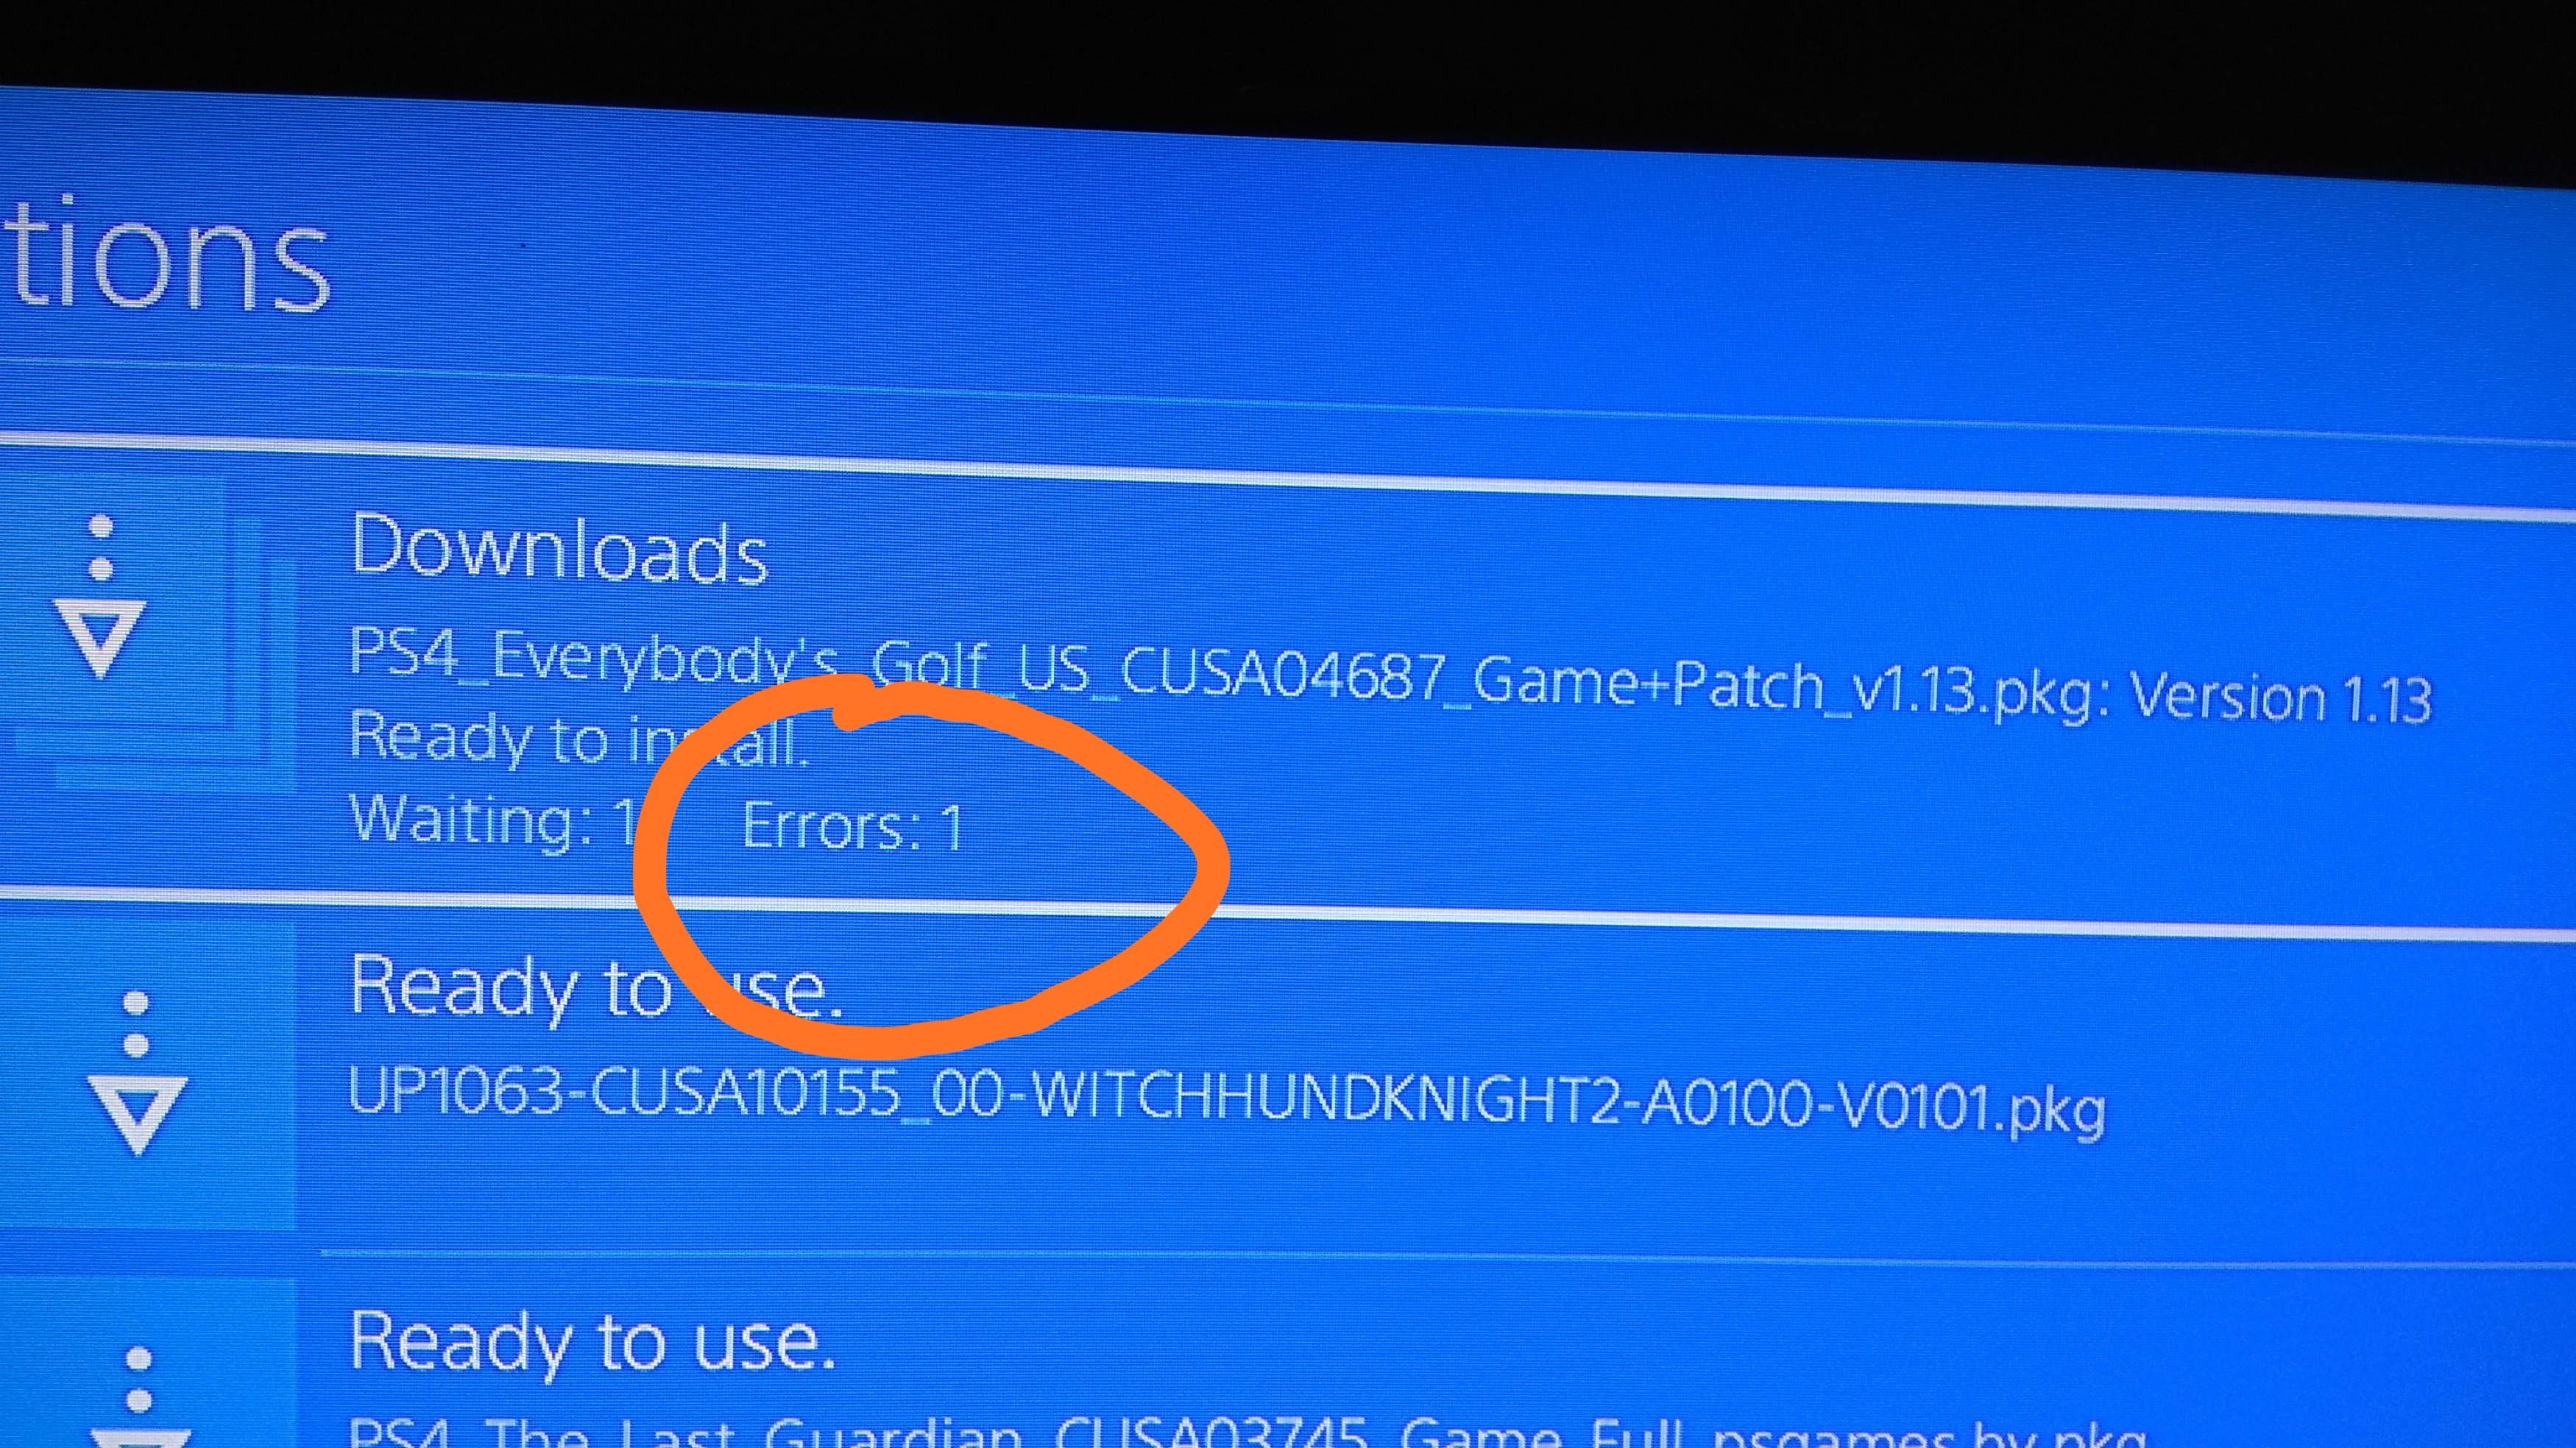 i installed bad fpkg on ps23 hen, shows as others application, how